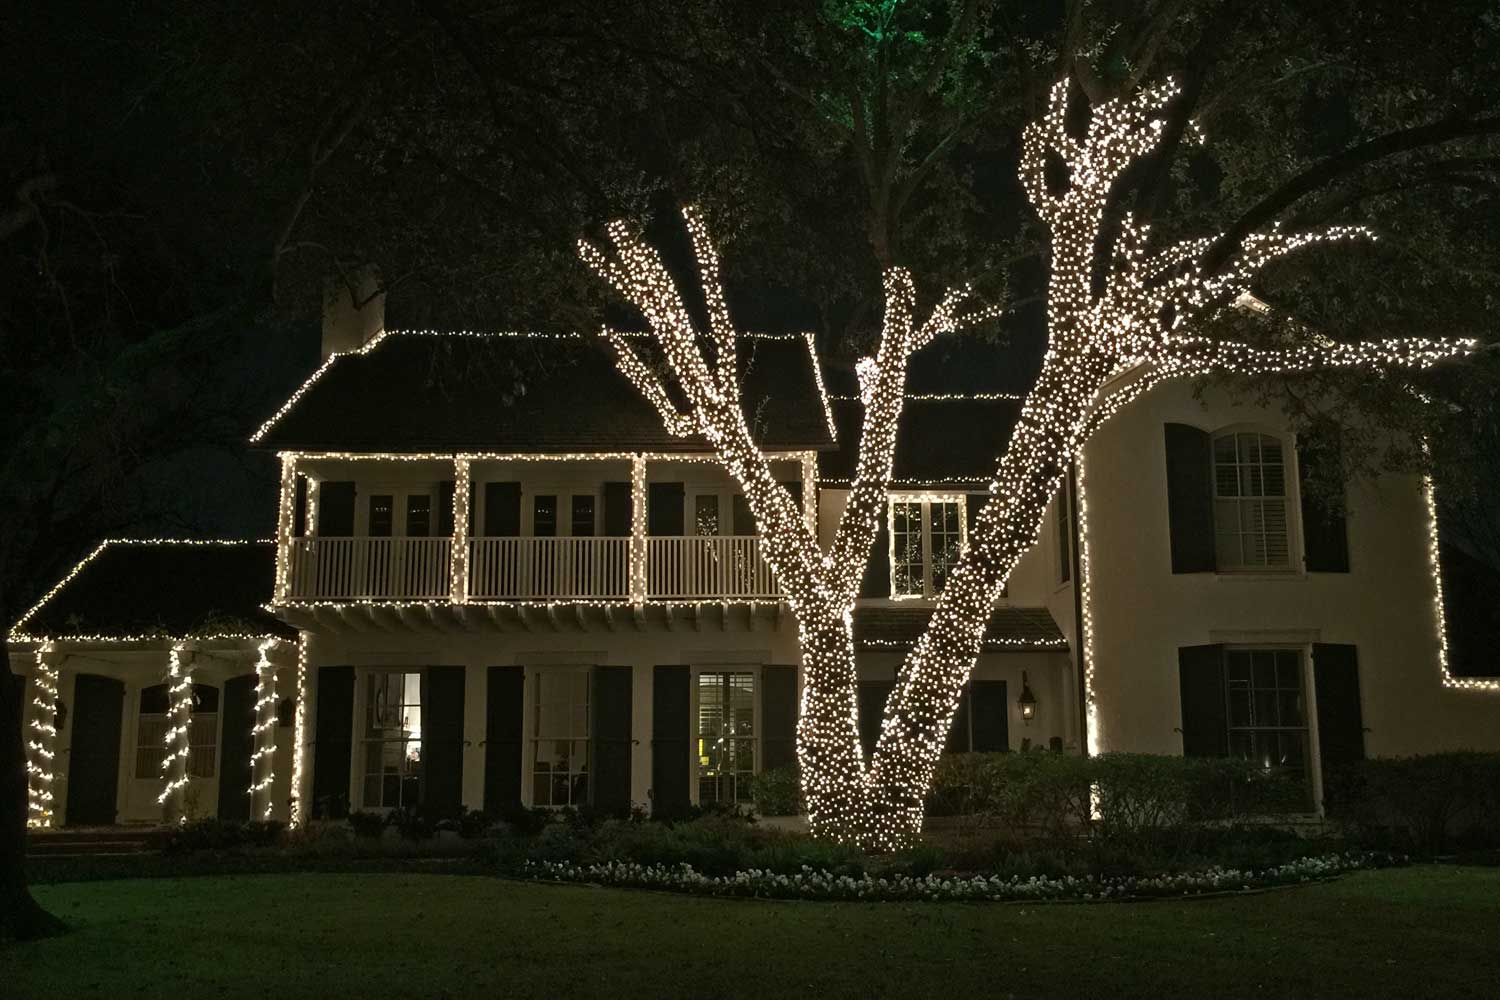 An all white light display and beautiful Live Oak tree wrapped with lights. (Marquette Street in University Park)